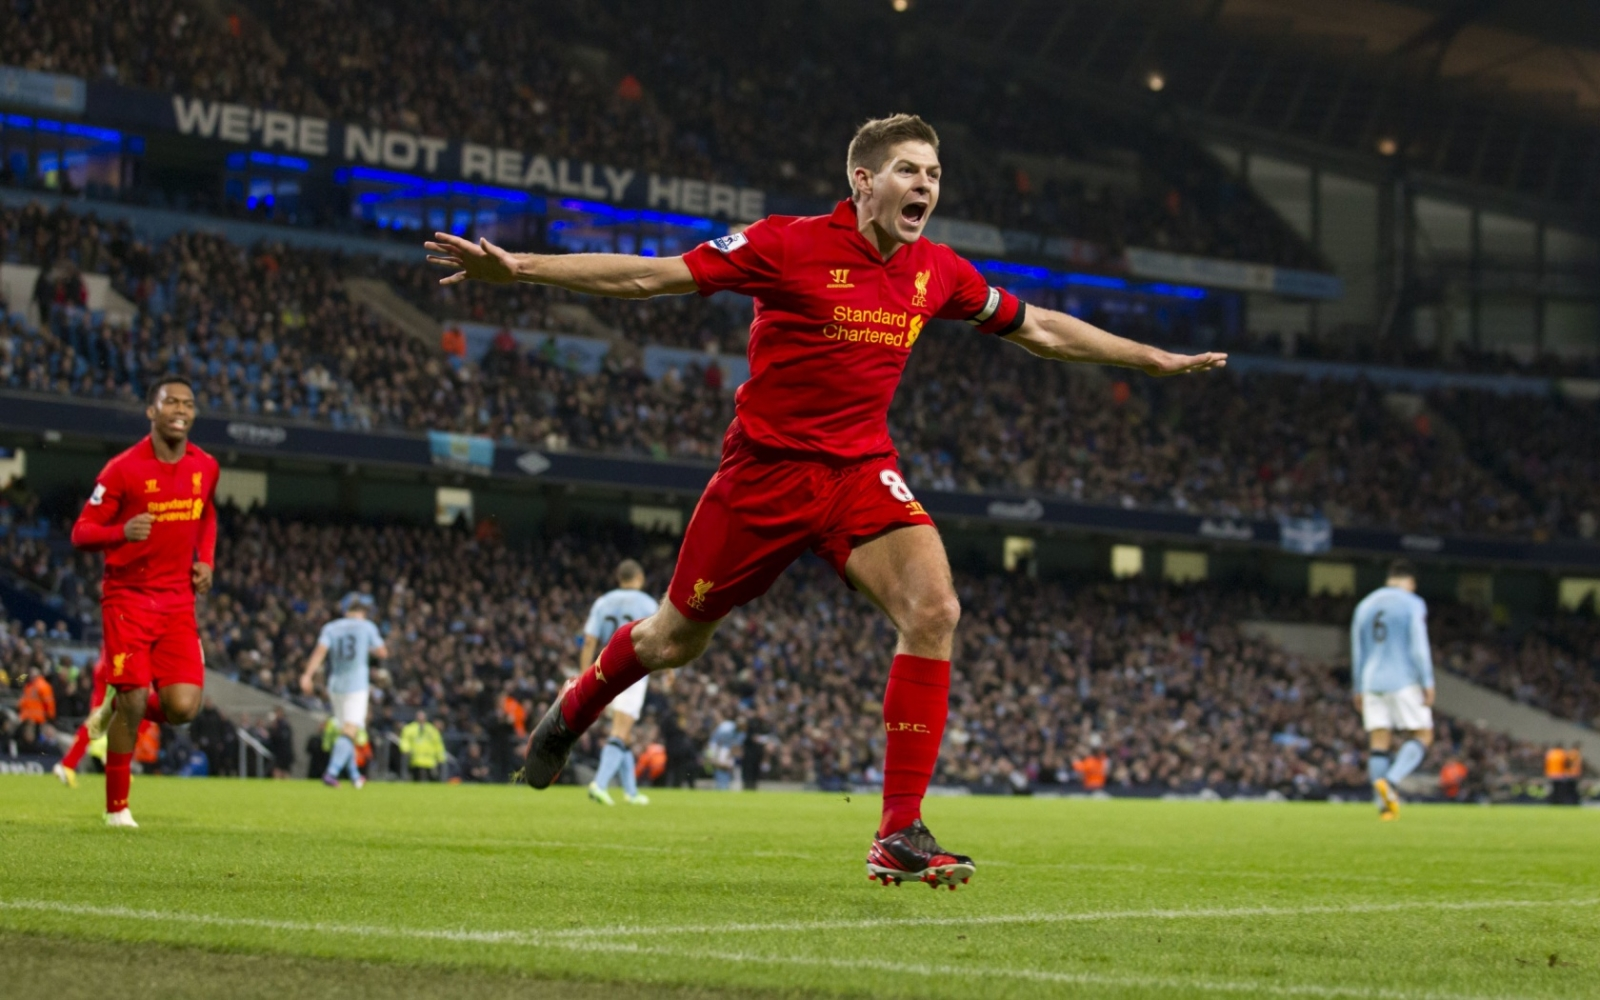 Brendan Rodgers reaffirms Gerrard's importance to Liverpool squad